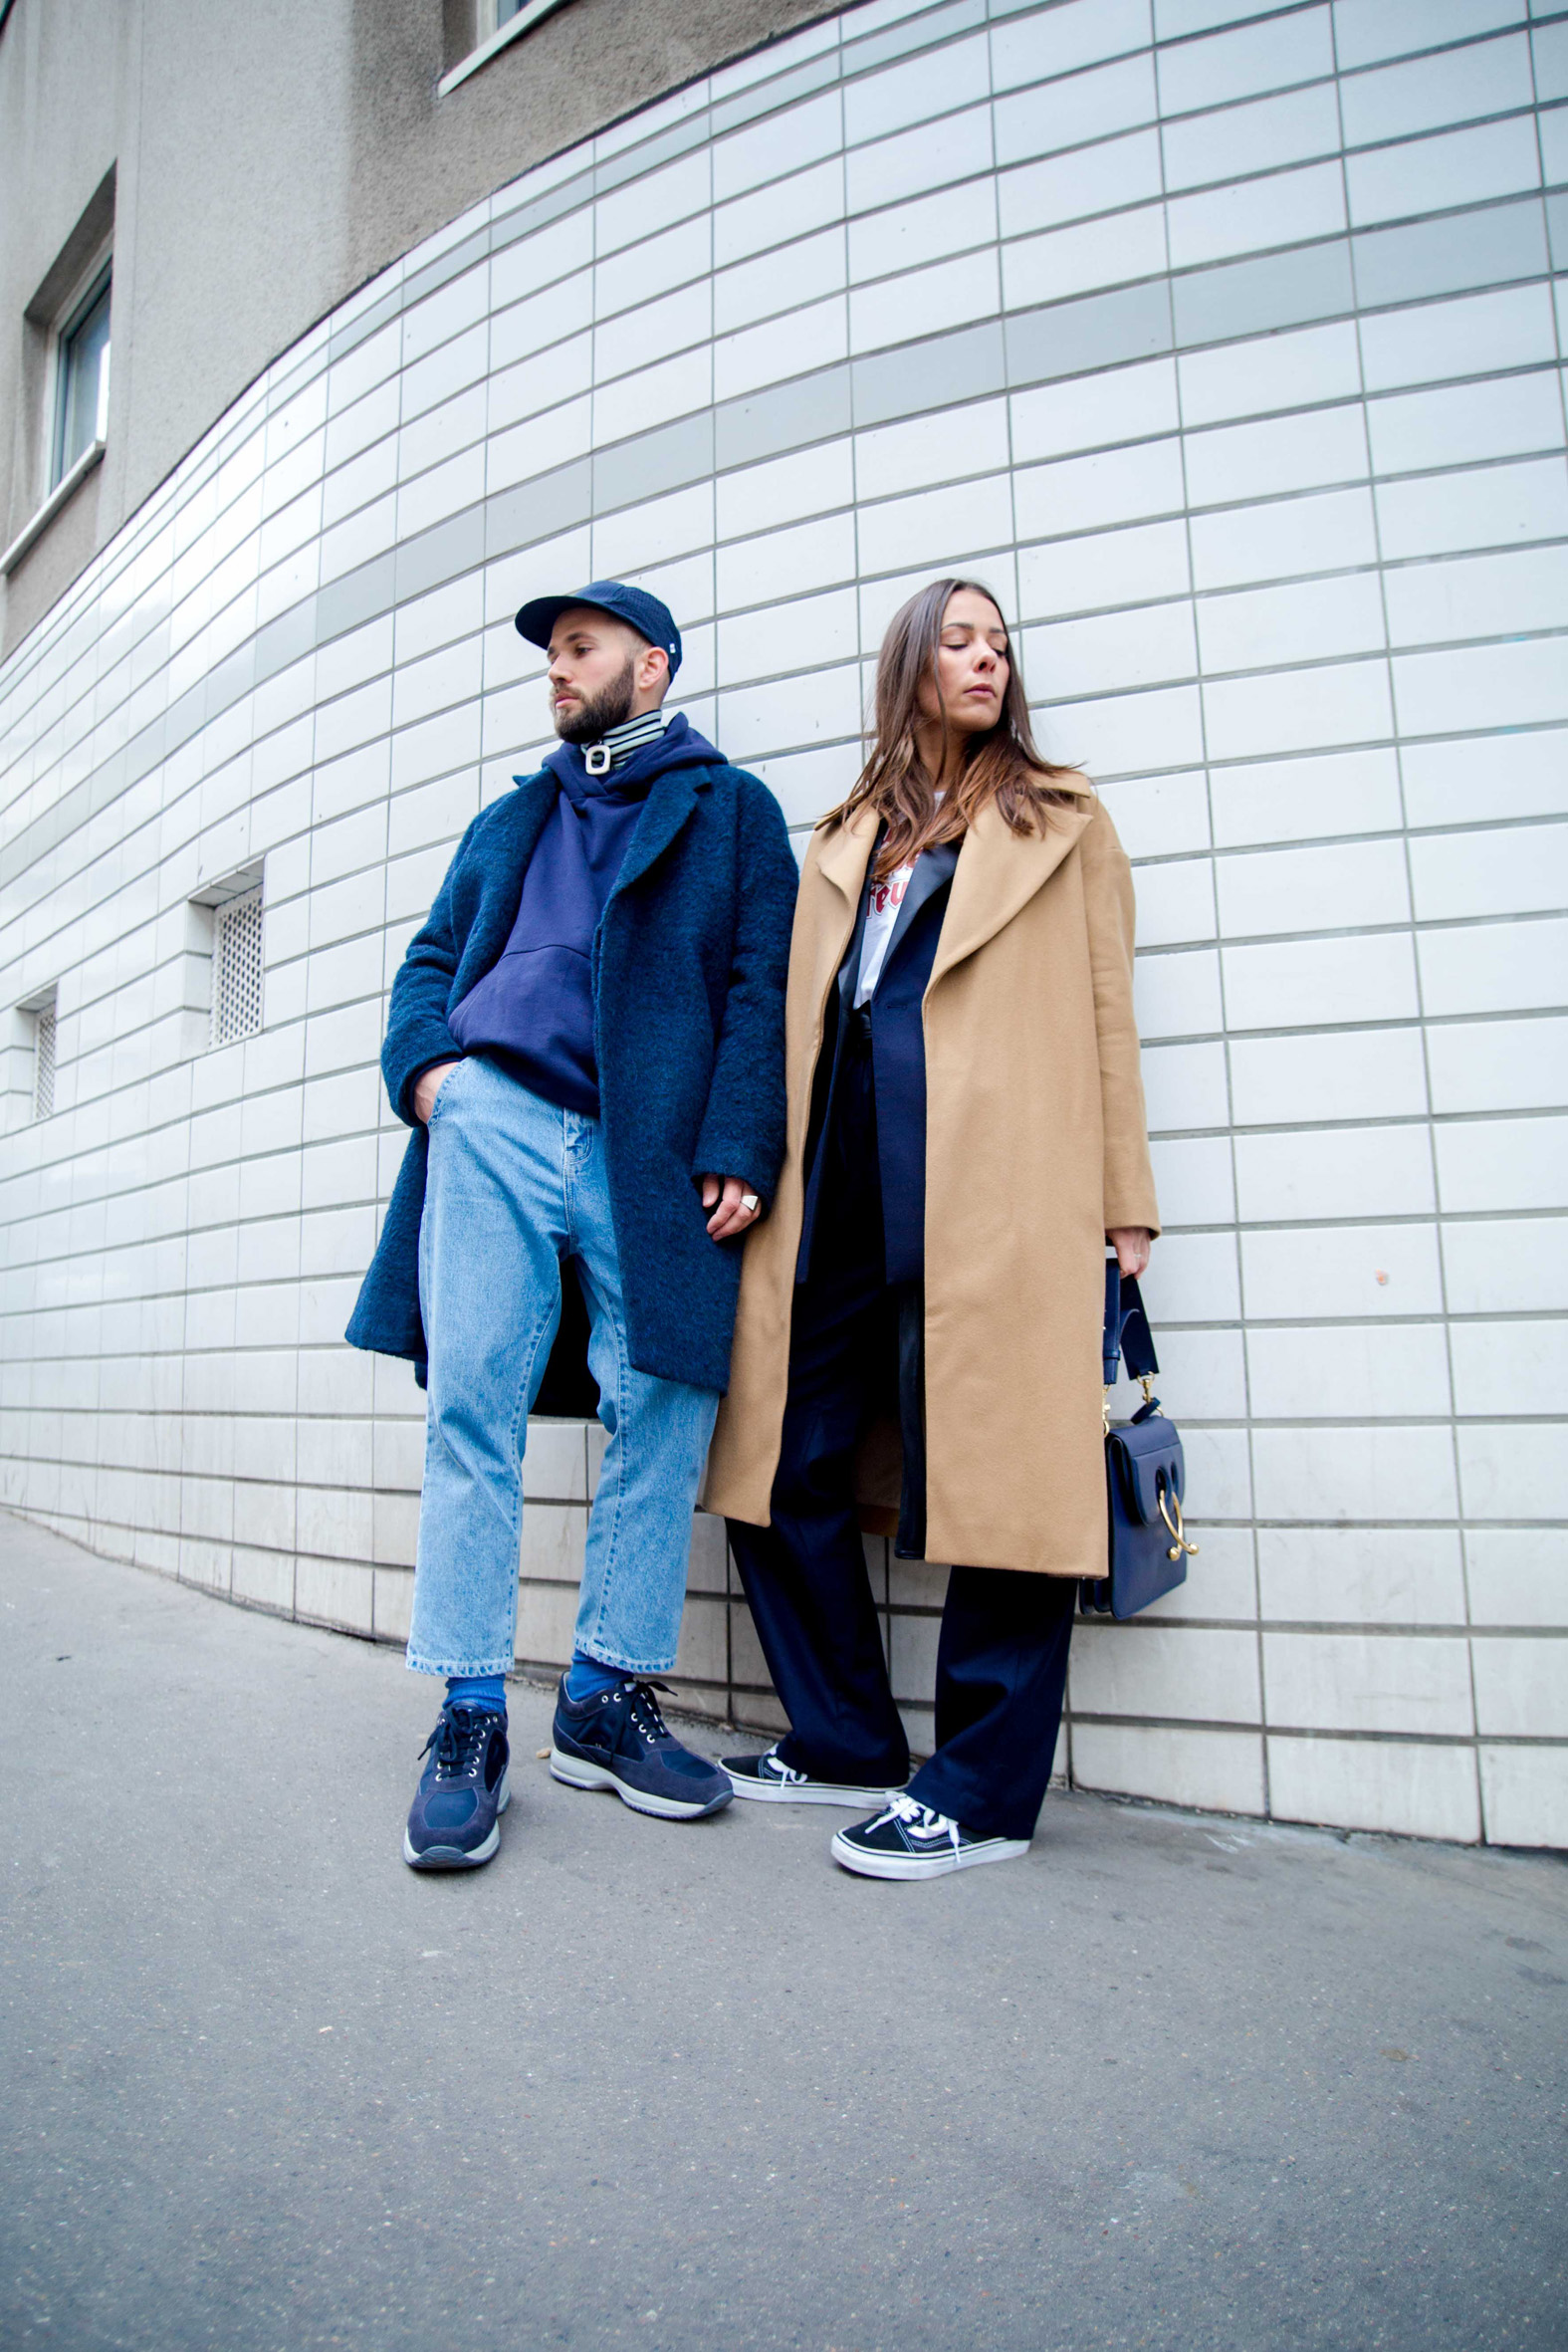 fashion-couple-blog-jaimetoutcheztoi-mode-alice-js-9